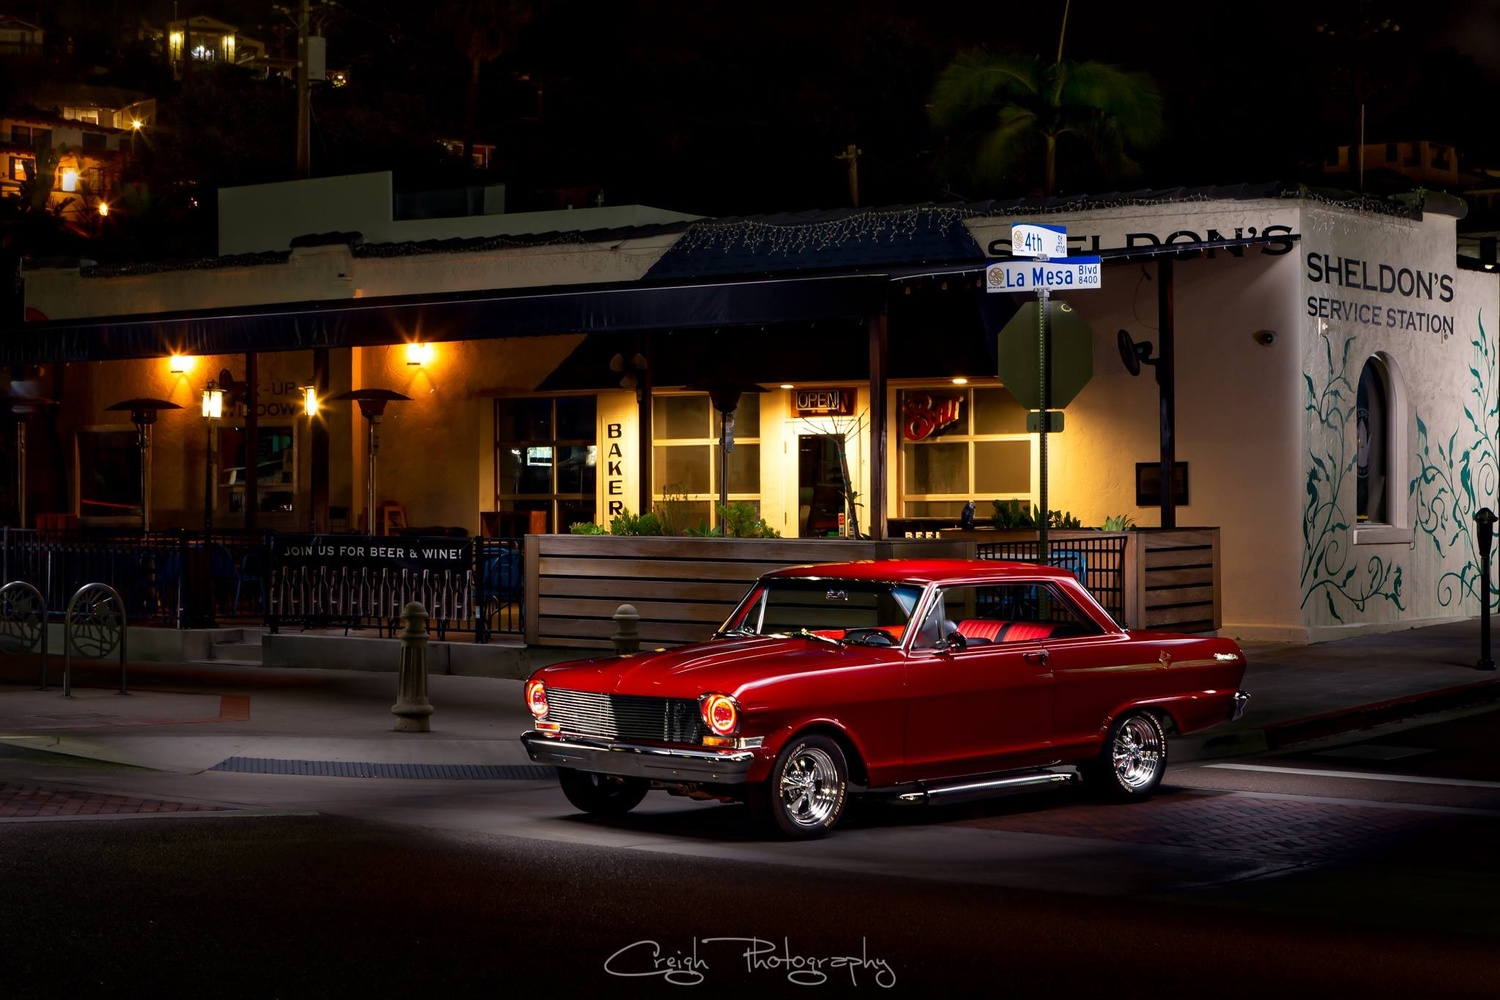 One Bad V8 by Creigh McIntyre